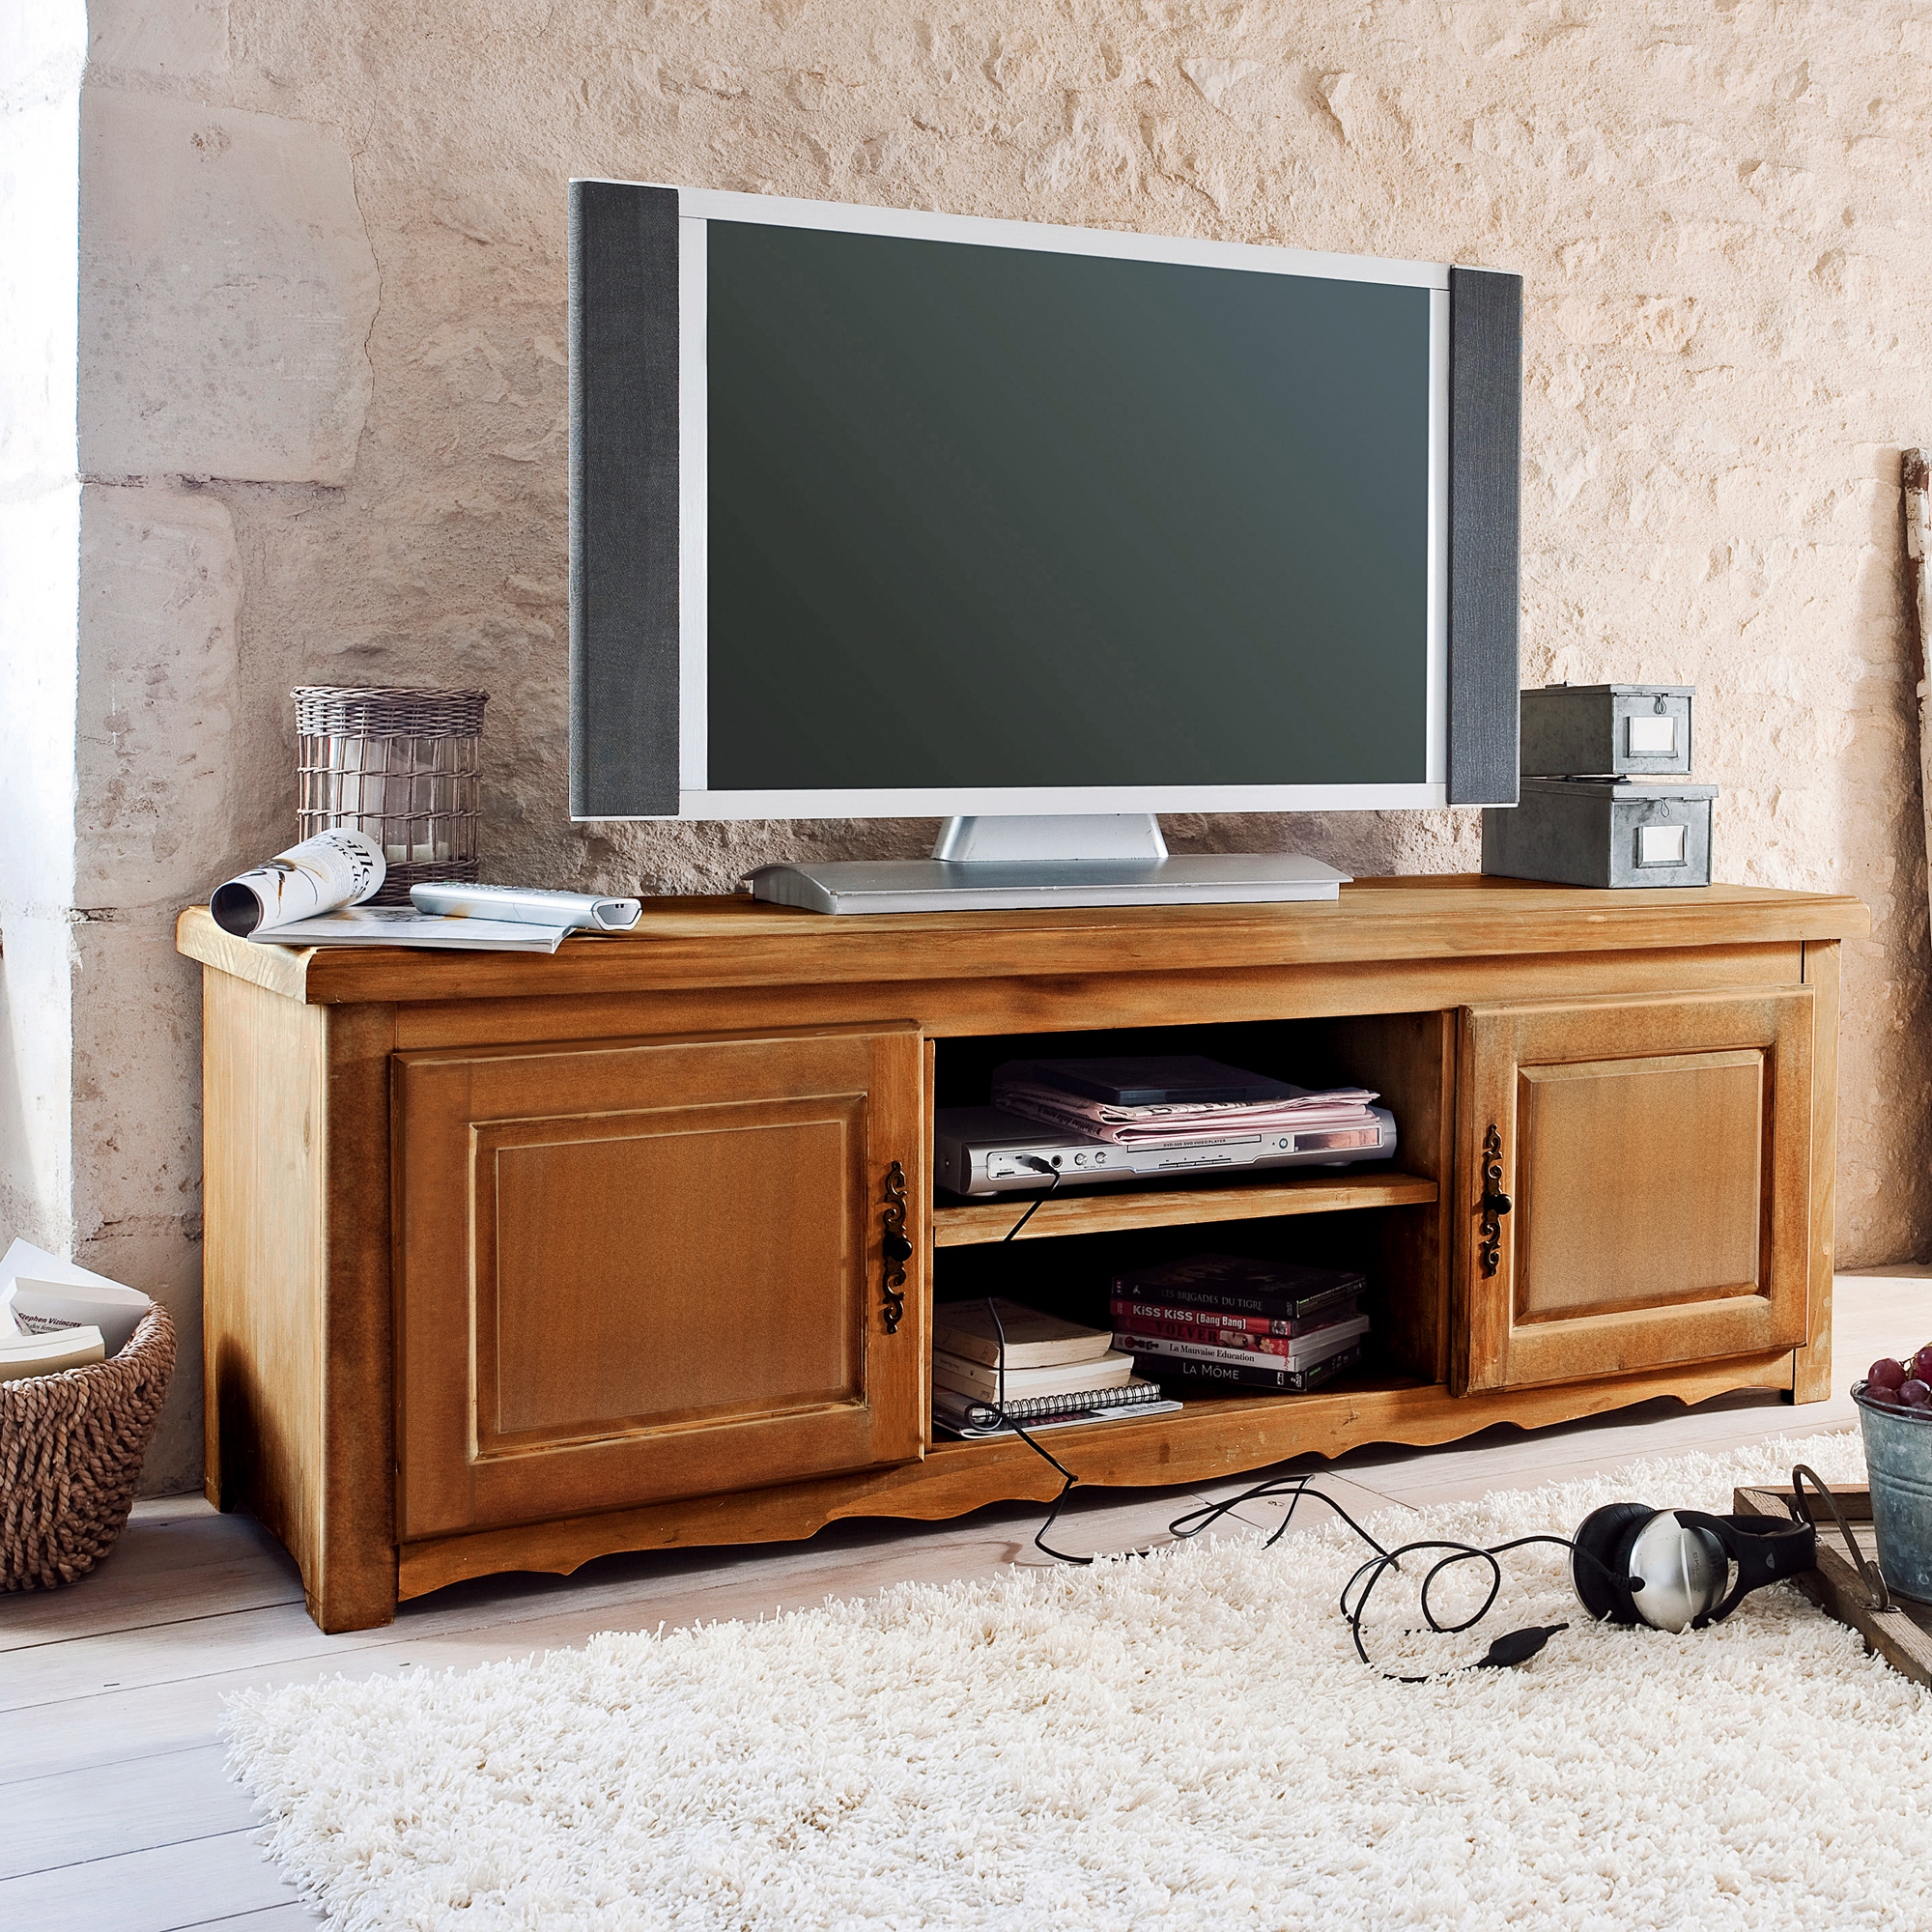 Destockage Meuble Tv Destockage Tv Ecran Plat Maison Design Wiblia